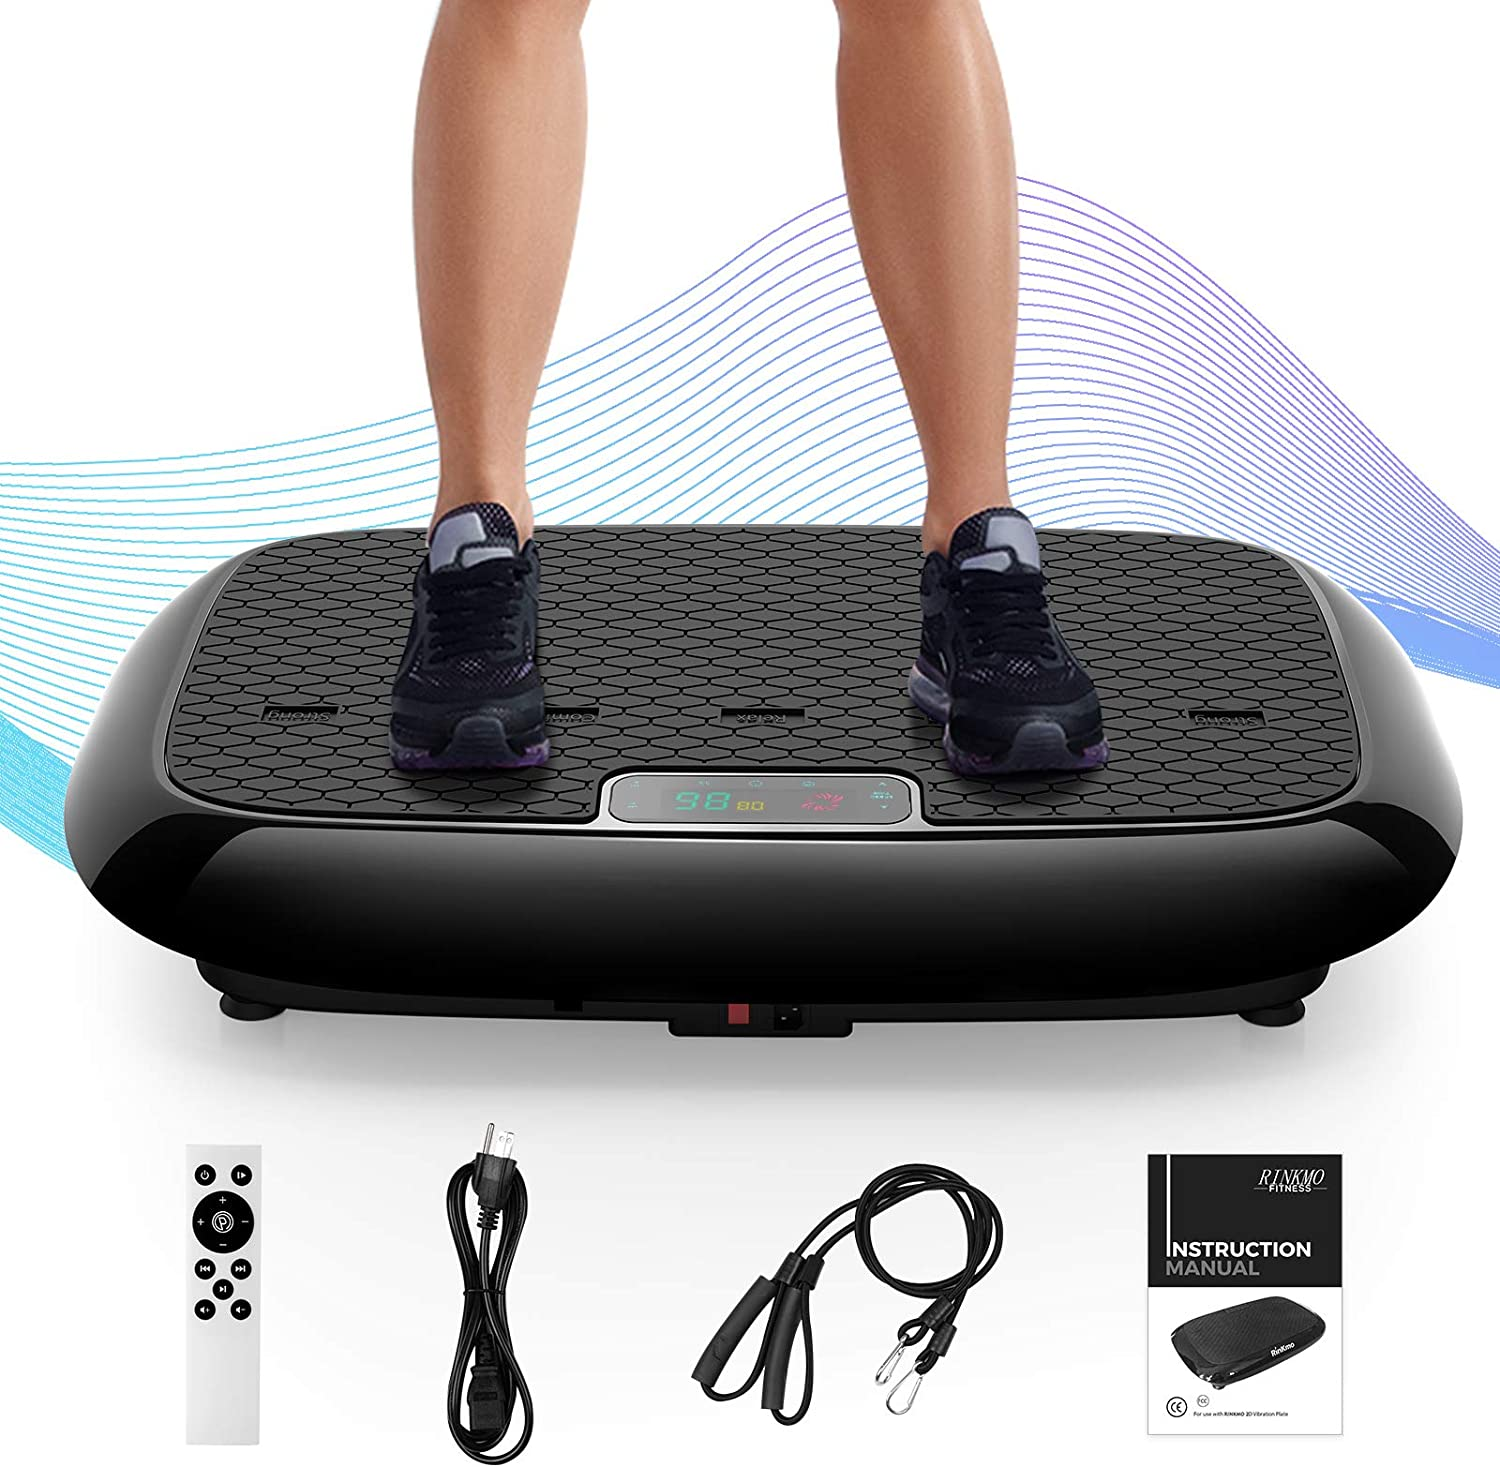 RINKMO Vibration Plate Exercise Machines with Resistance Bands, Whole Body Workout Vibrating Platform with Bluetooth Speaker for Home Fitness Training Equipment and Weight Loss Black